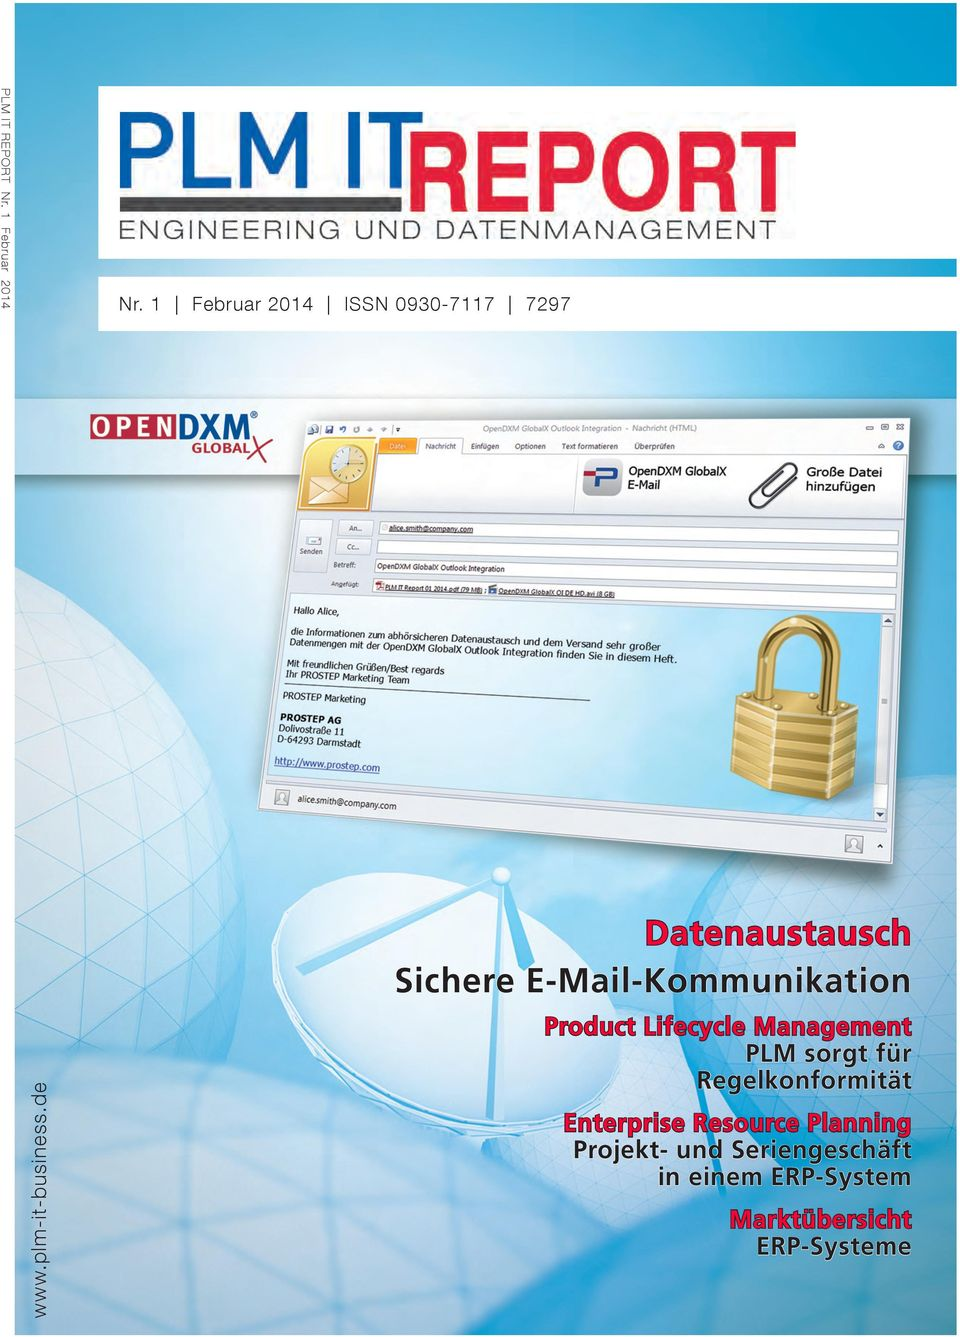 de Datenaustausch Sichere E-Mail-Kommunikation Product Lifecycle Management